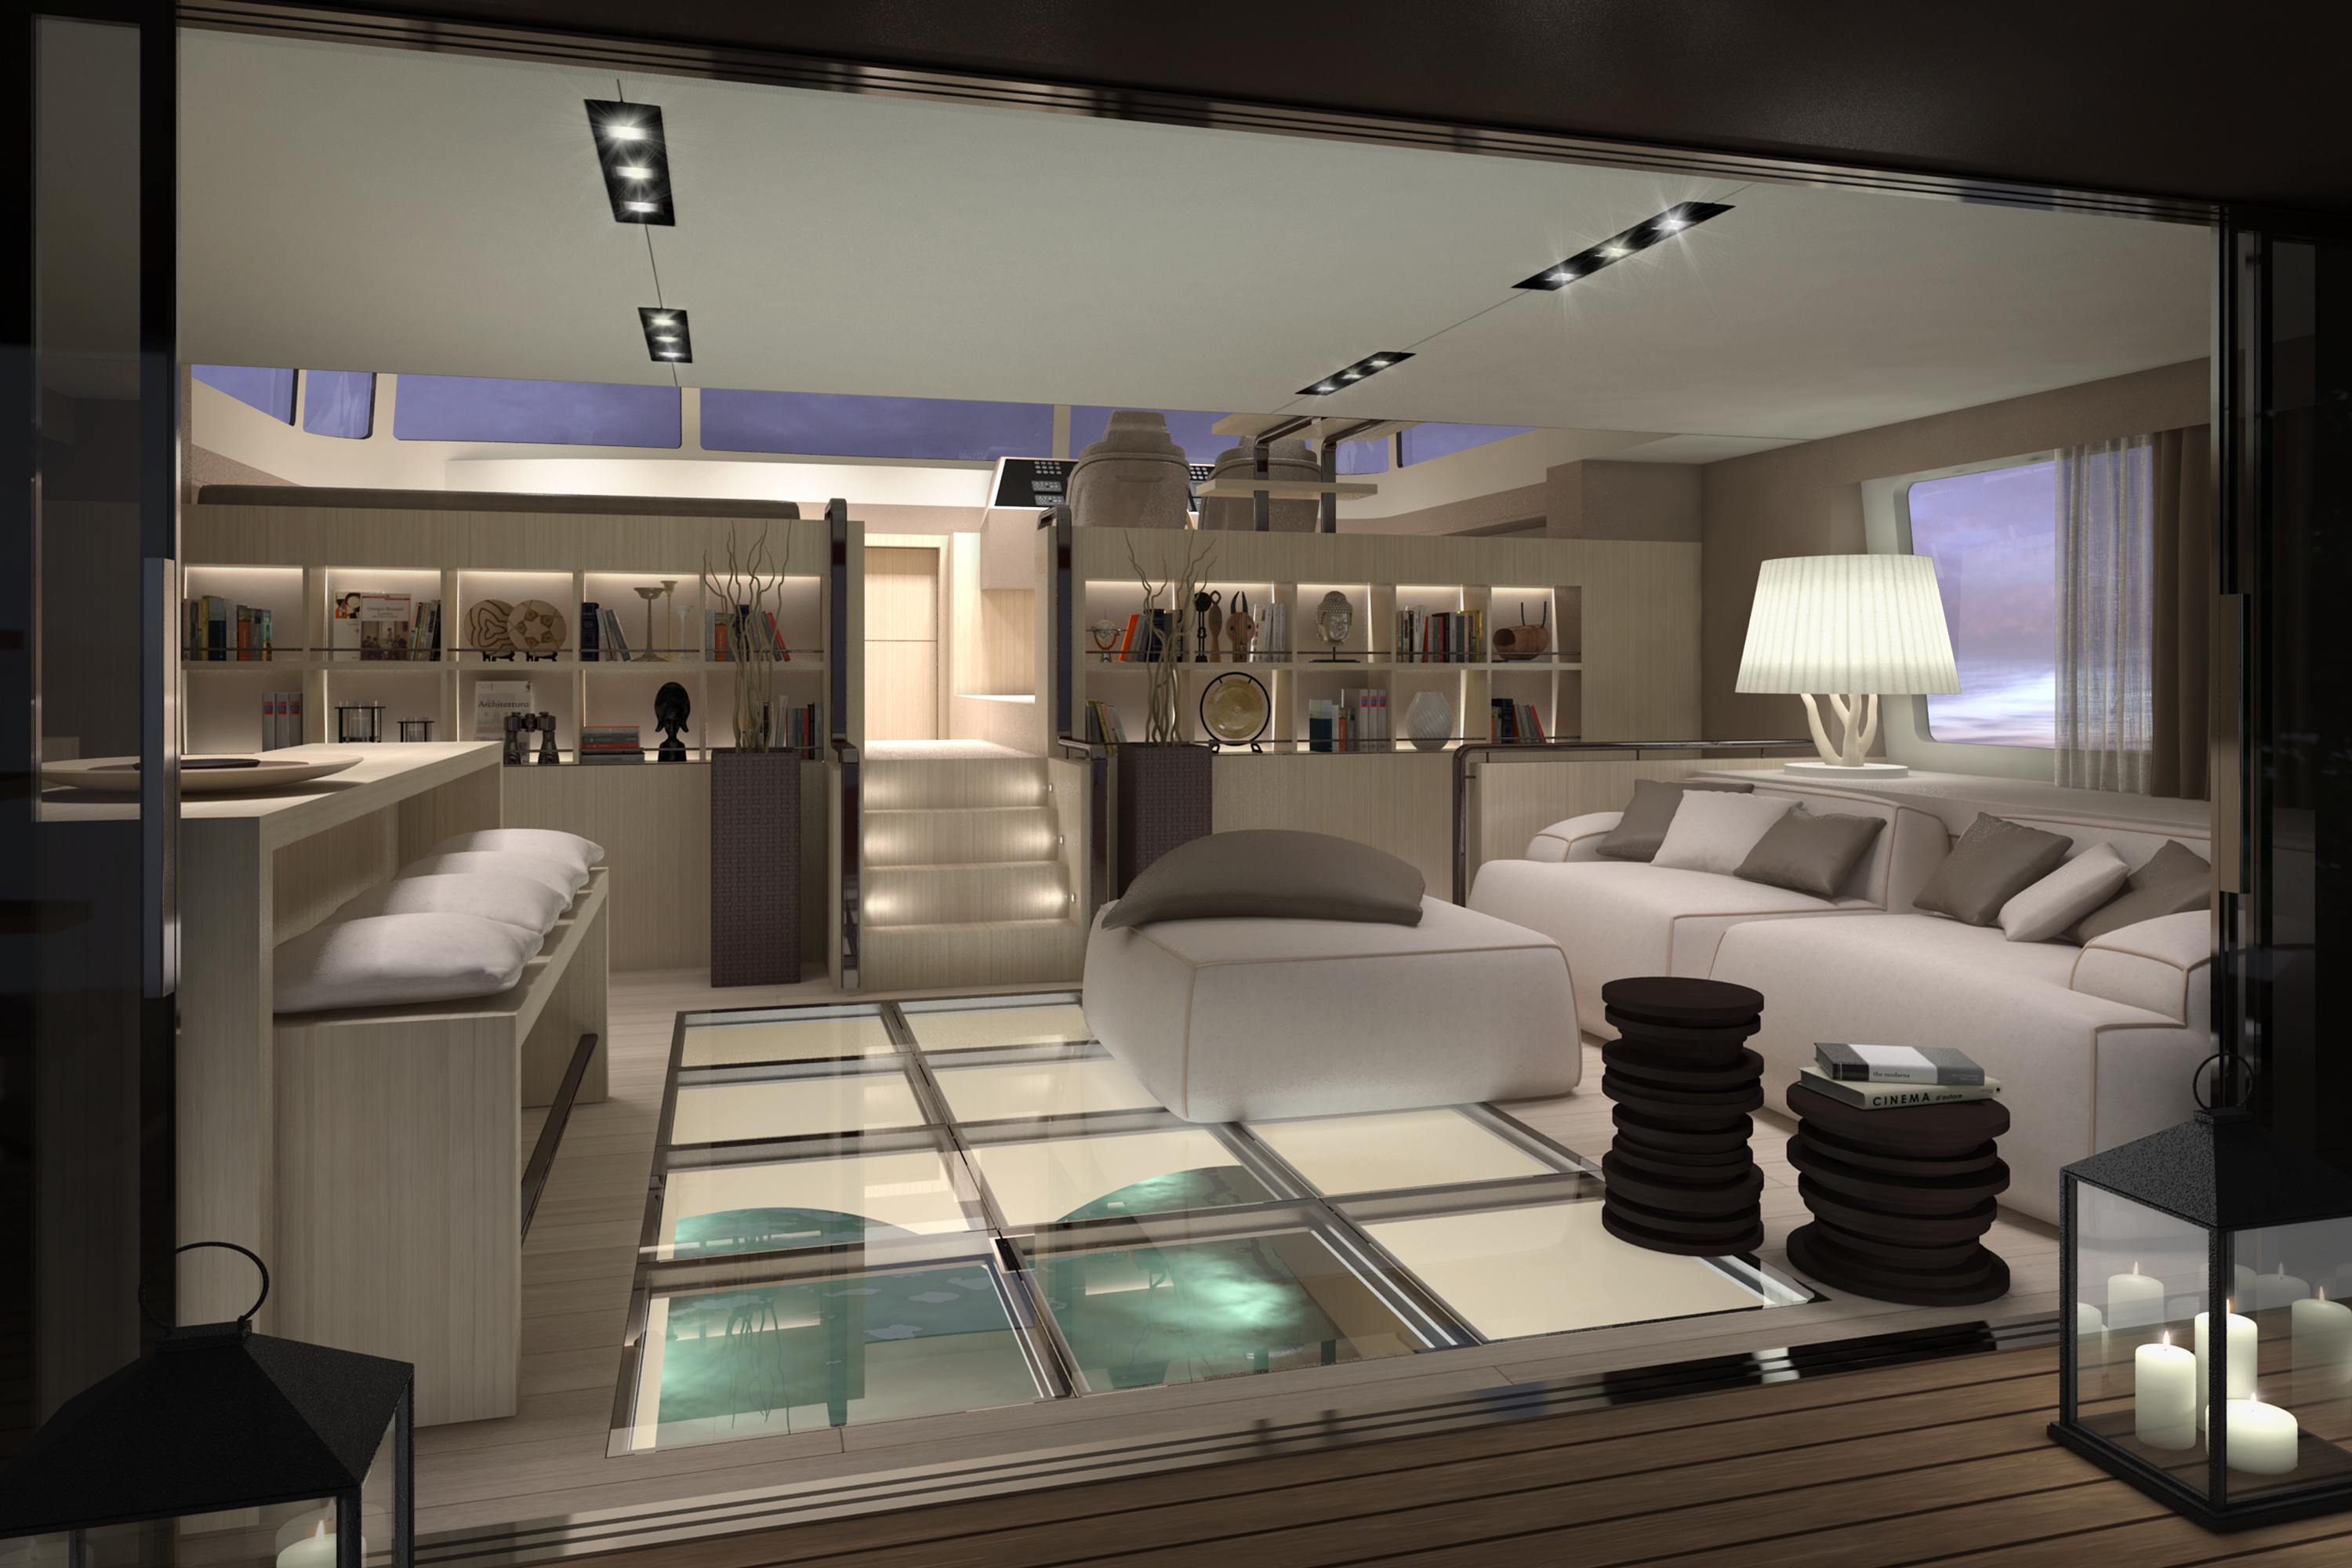 christian grande introduces picchio boat a new concept. Black Bedroom Furniture Sets. Home Design Ideas